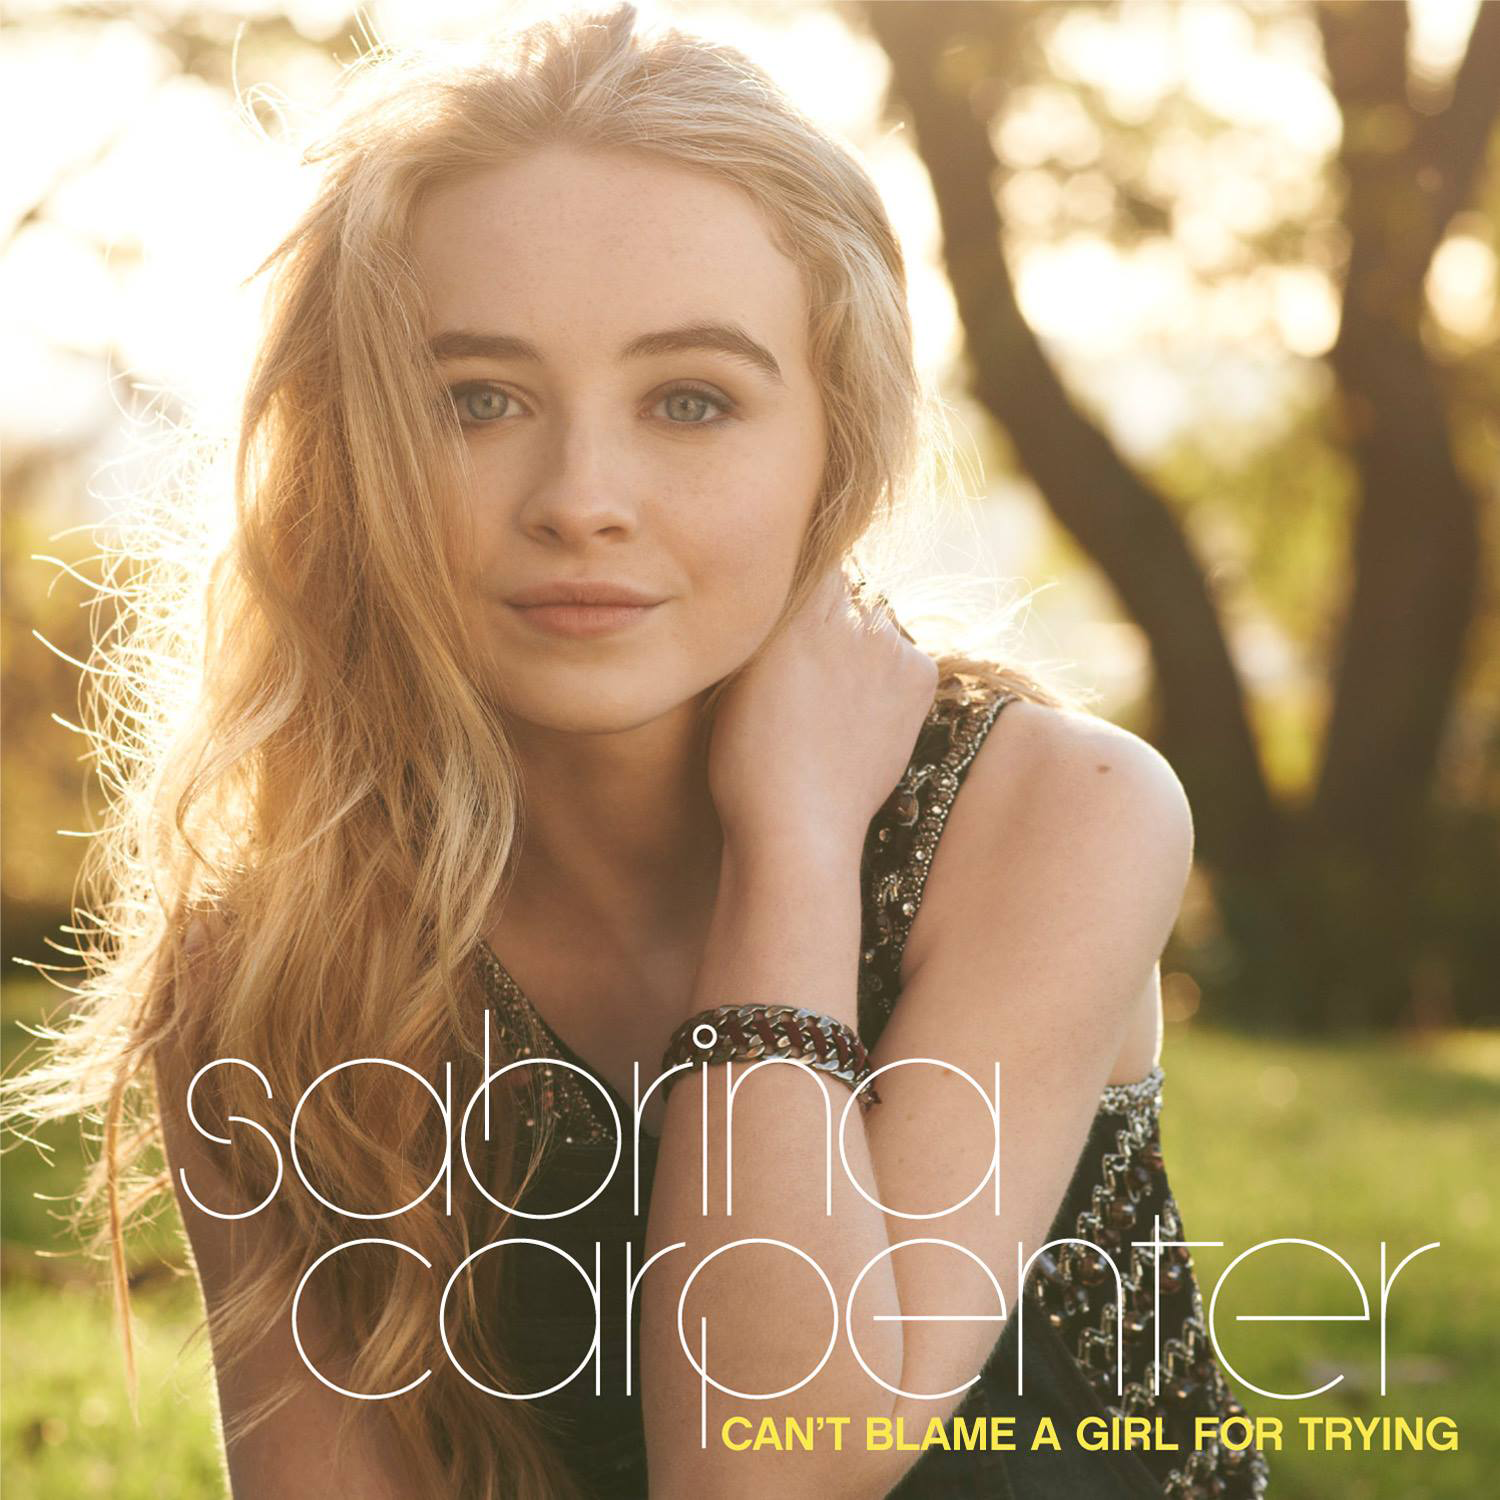 Sabrina carpenter covers radioactive dating